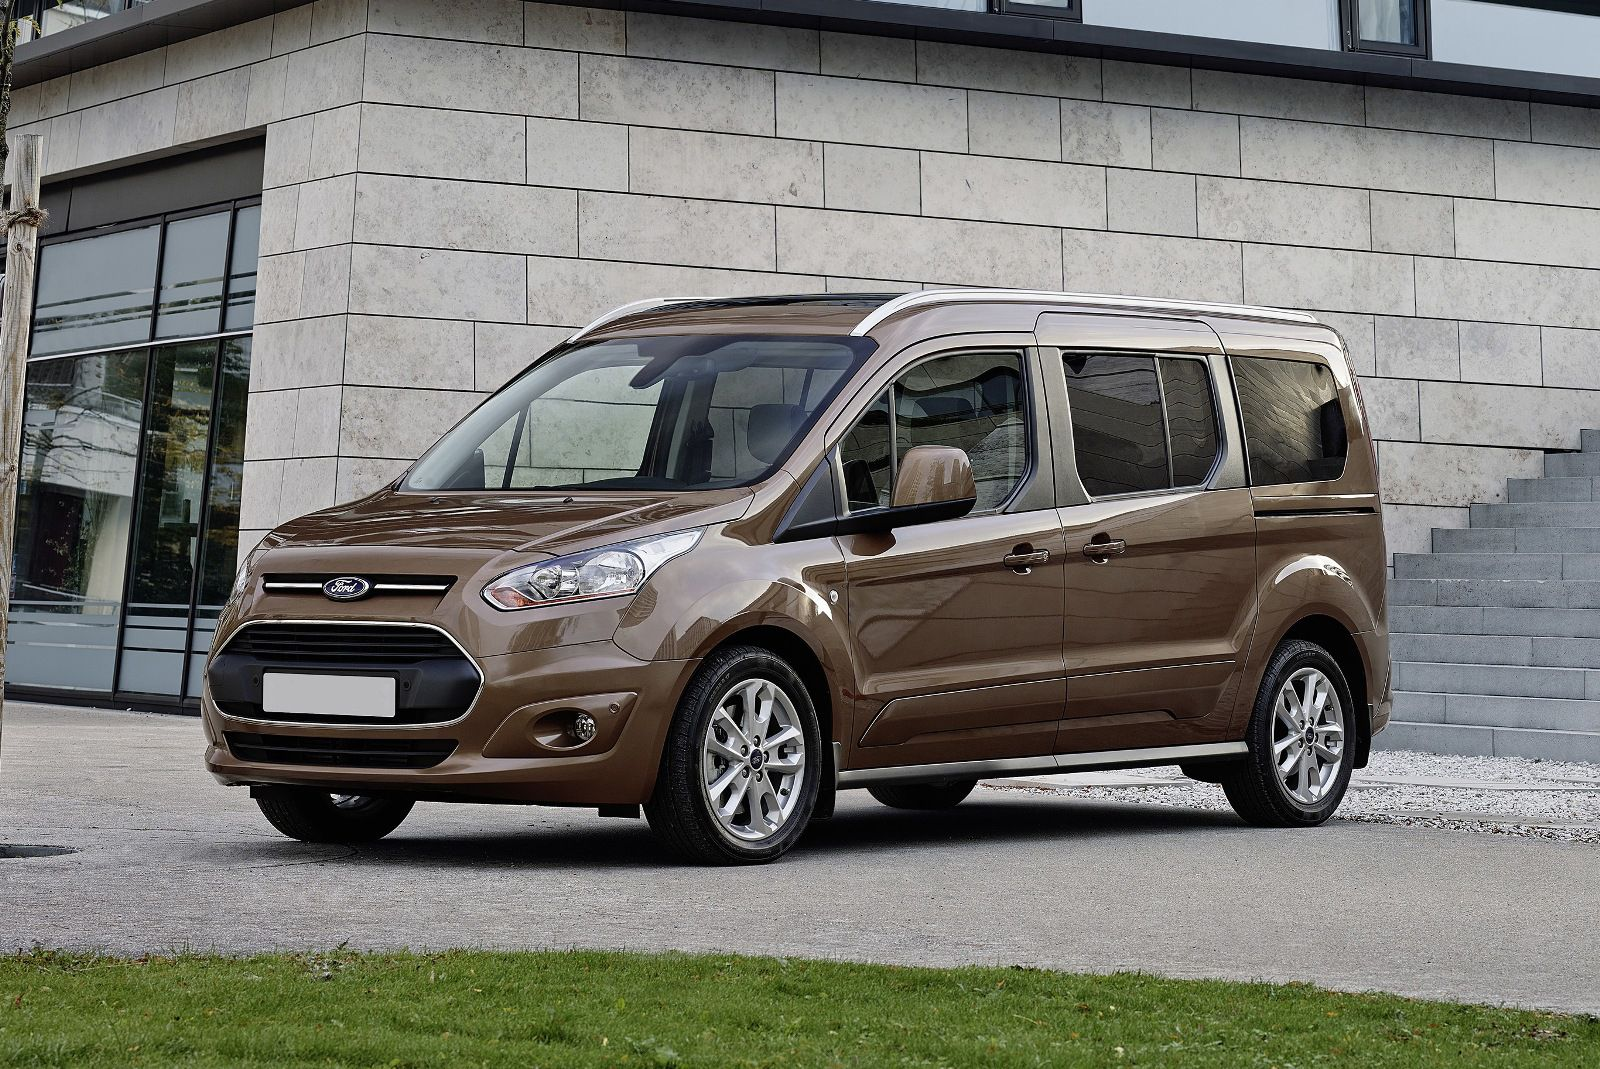 Ford Grand tourneo connect | New and used Ford car dealers in